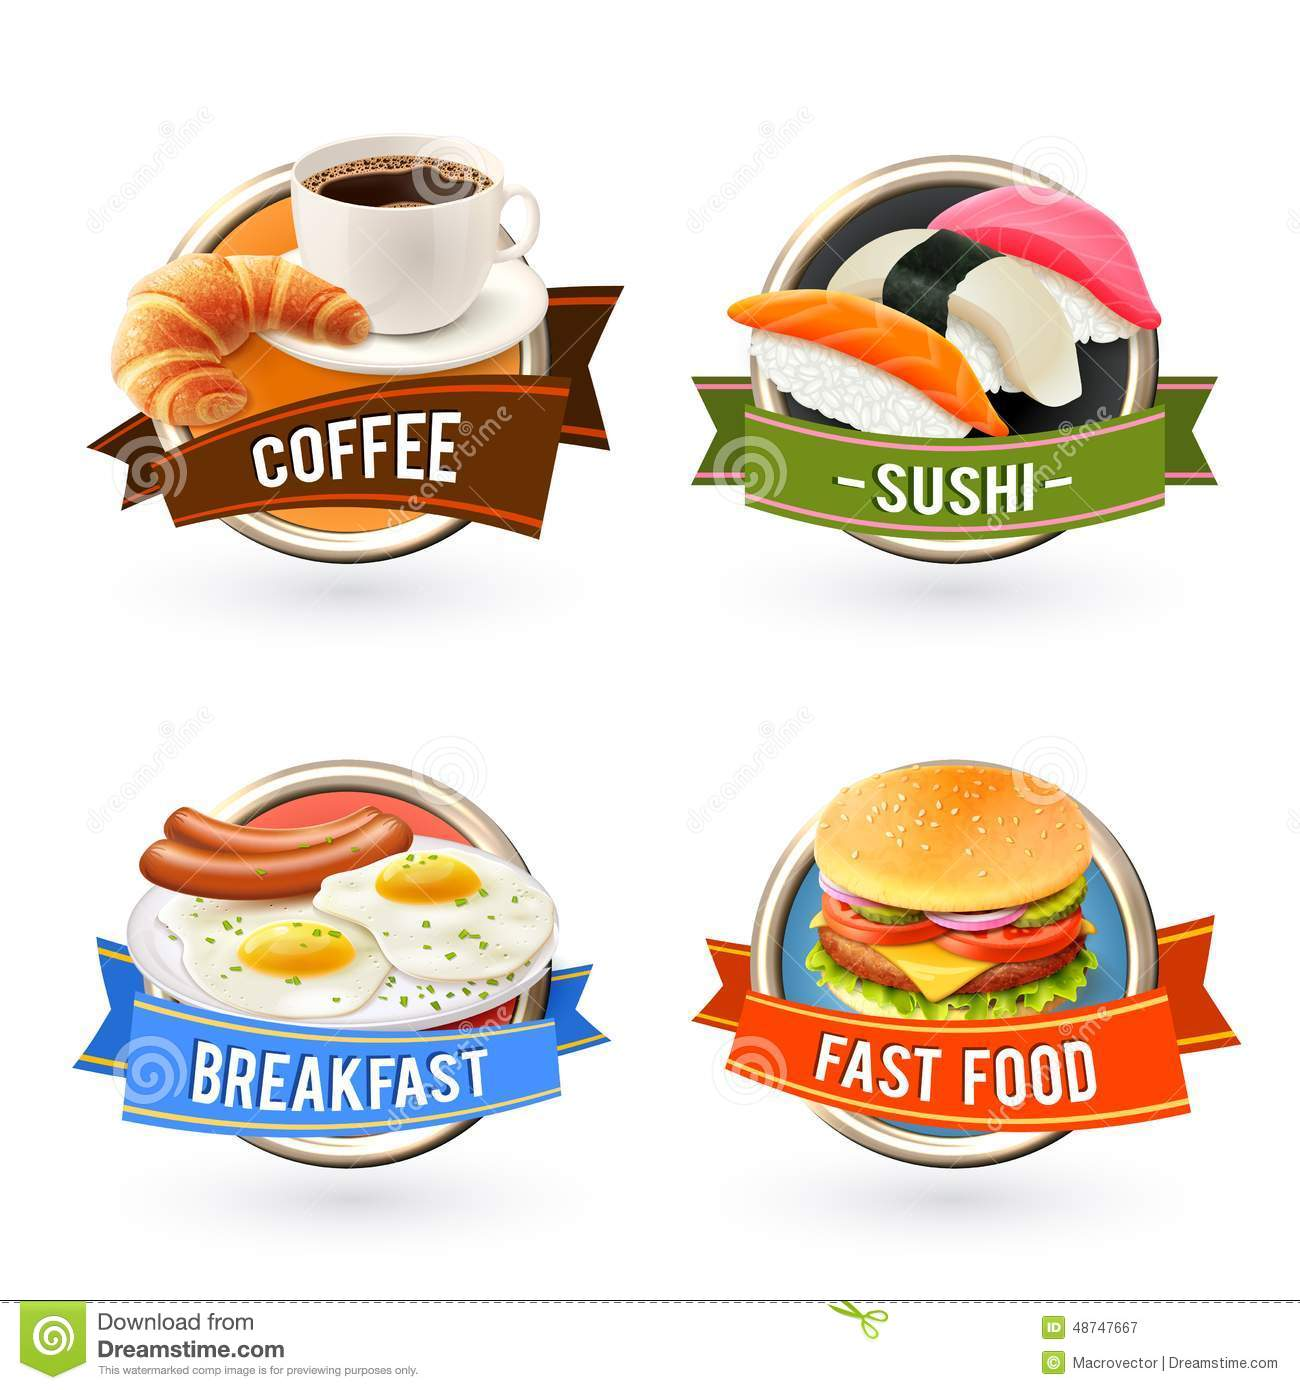 How To Set Up A Fast Food Restaurant